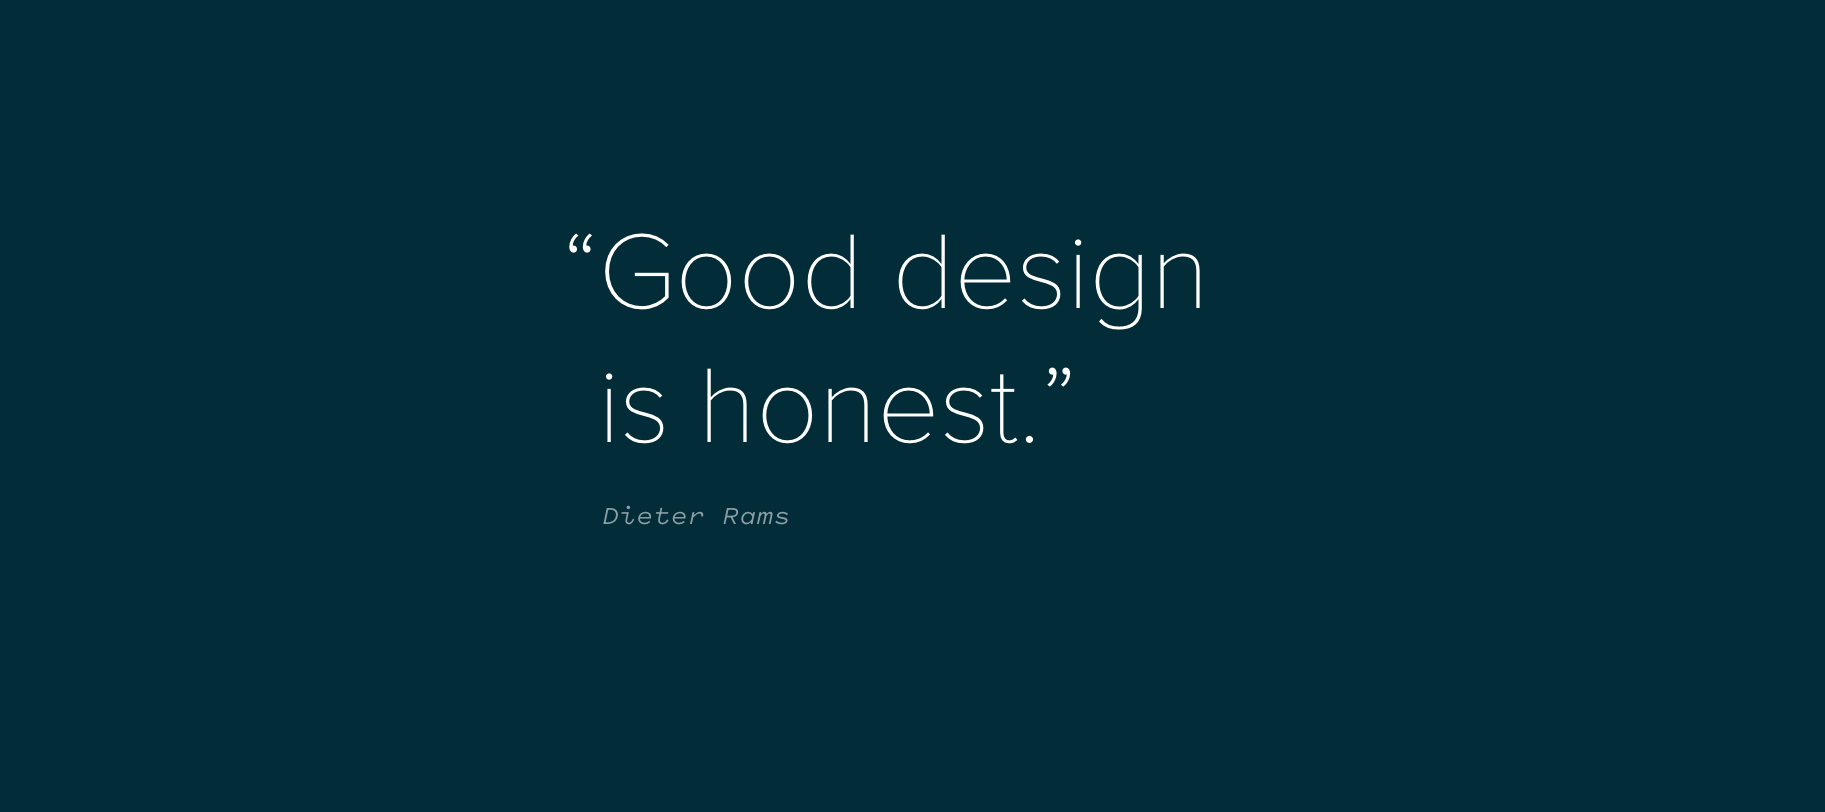 """Good design is honest"" Dieter Rams"